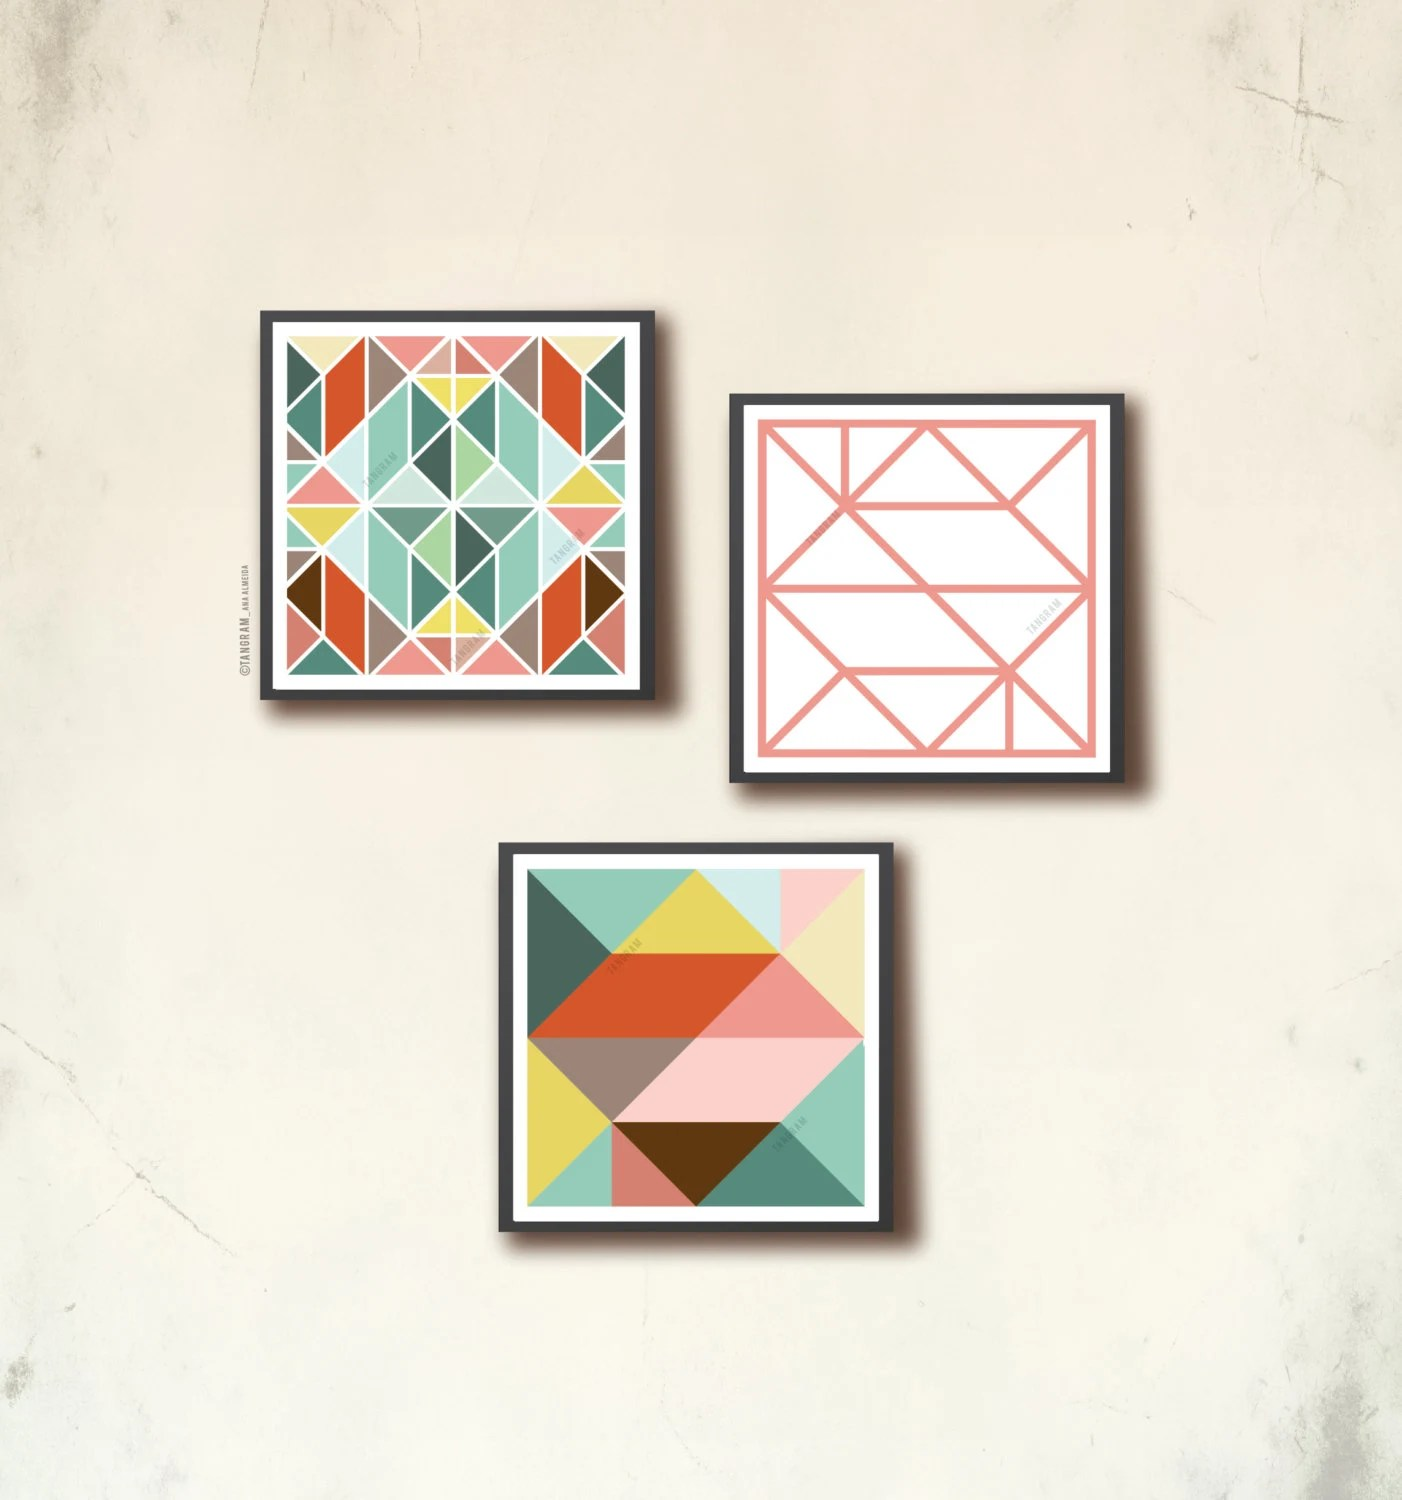 Affiches Scandinaves Affiche Scandinave 3 Square Scandinavian Poster Set Iii Geometric Art Trio Square Prints 12 X 12in Tangram Squares Tangramartworks